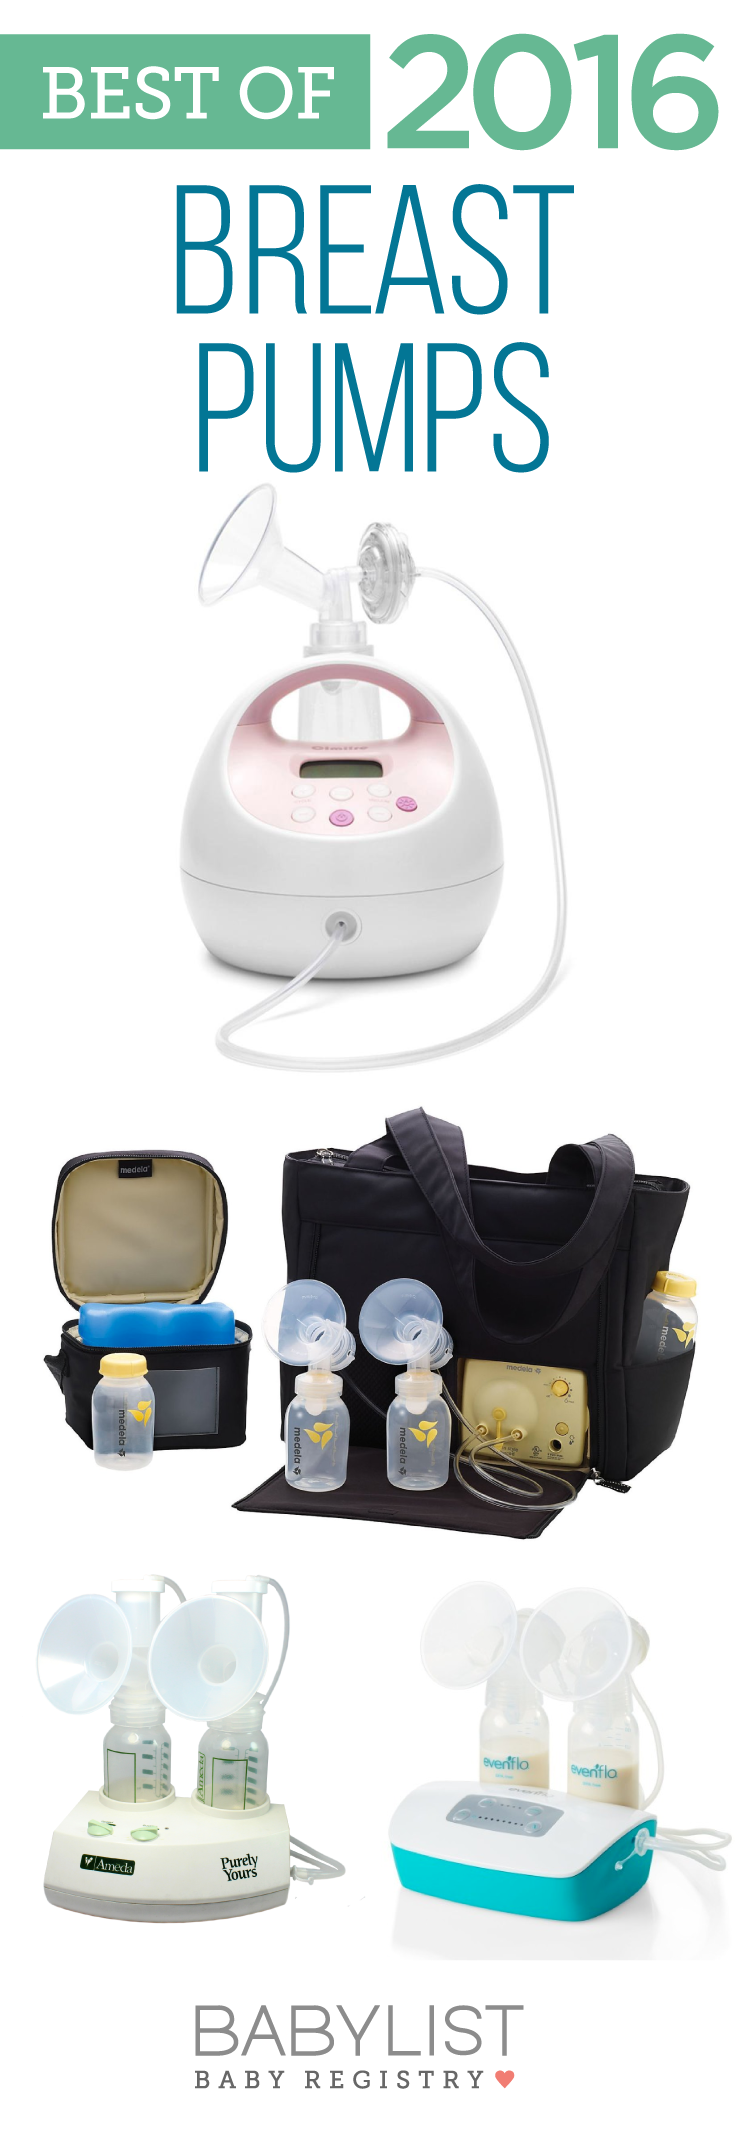 Here are the top breast pumps as voted by our users. Find one that is comfortable and fits your lifestyle.